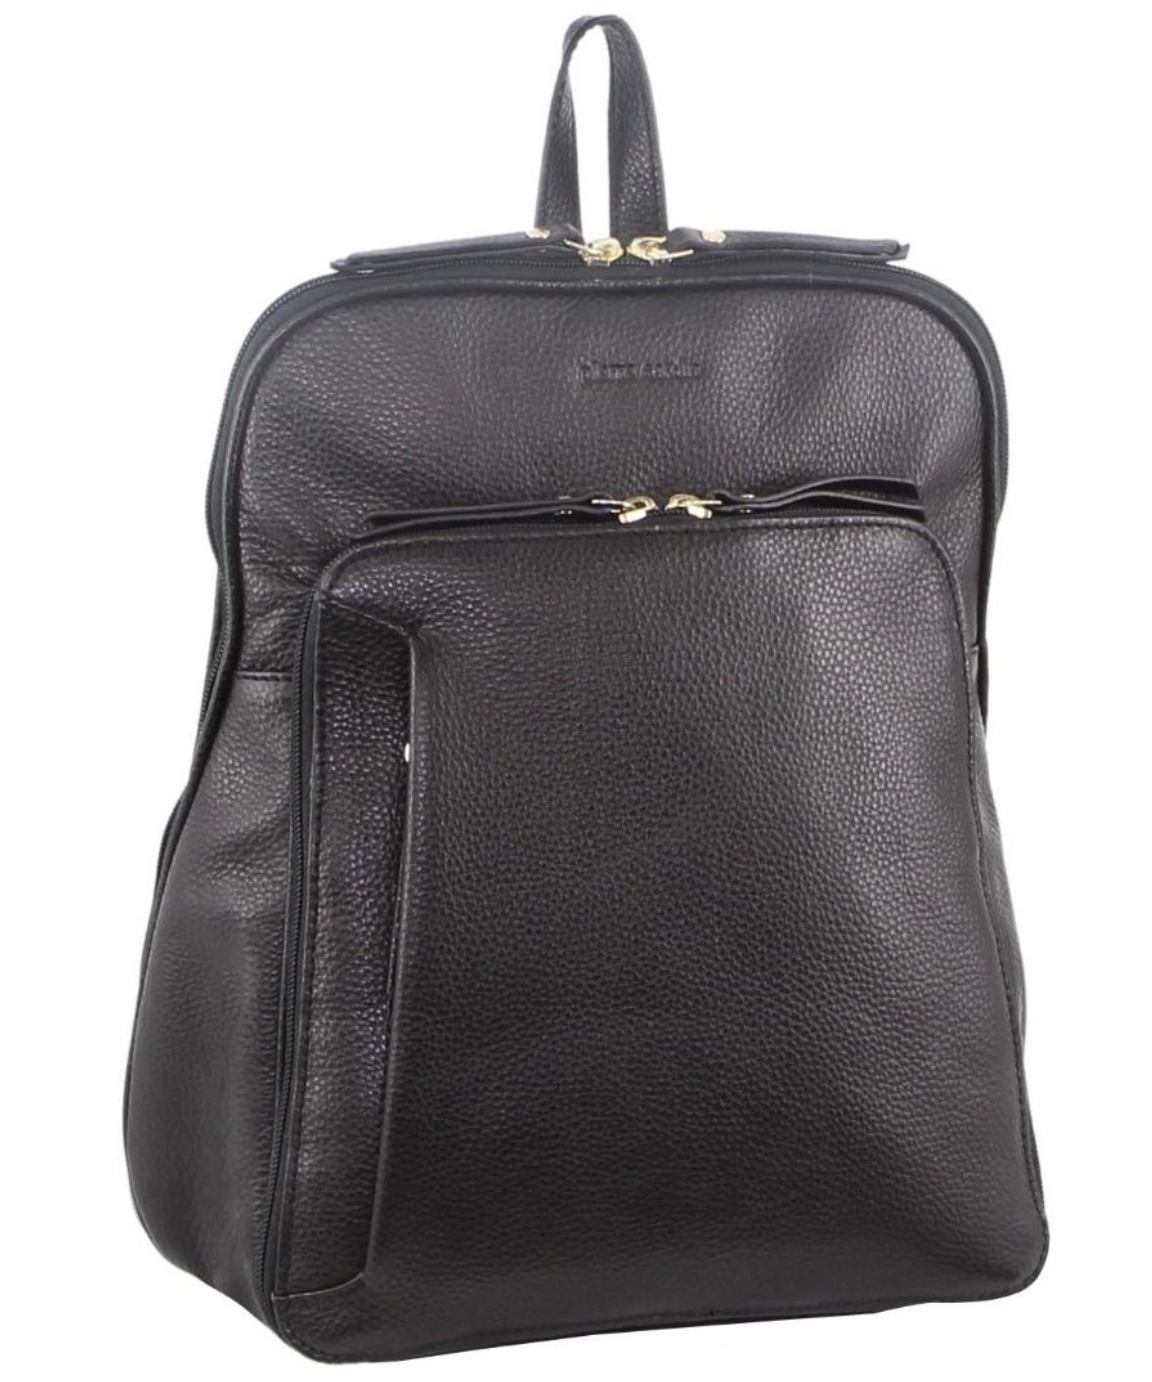 Pierre Cardin Women's Leather Backpack Bag with Pocket Front Multi-Zip